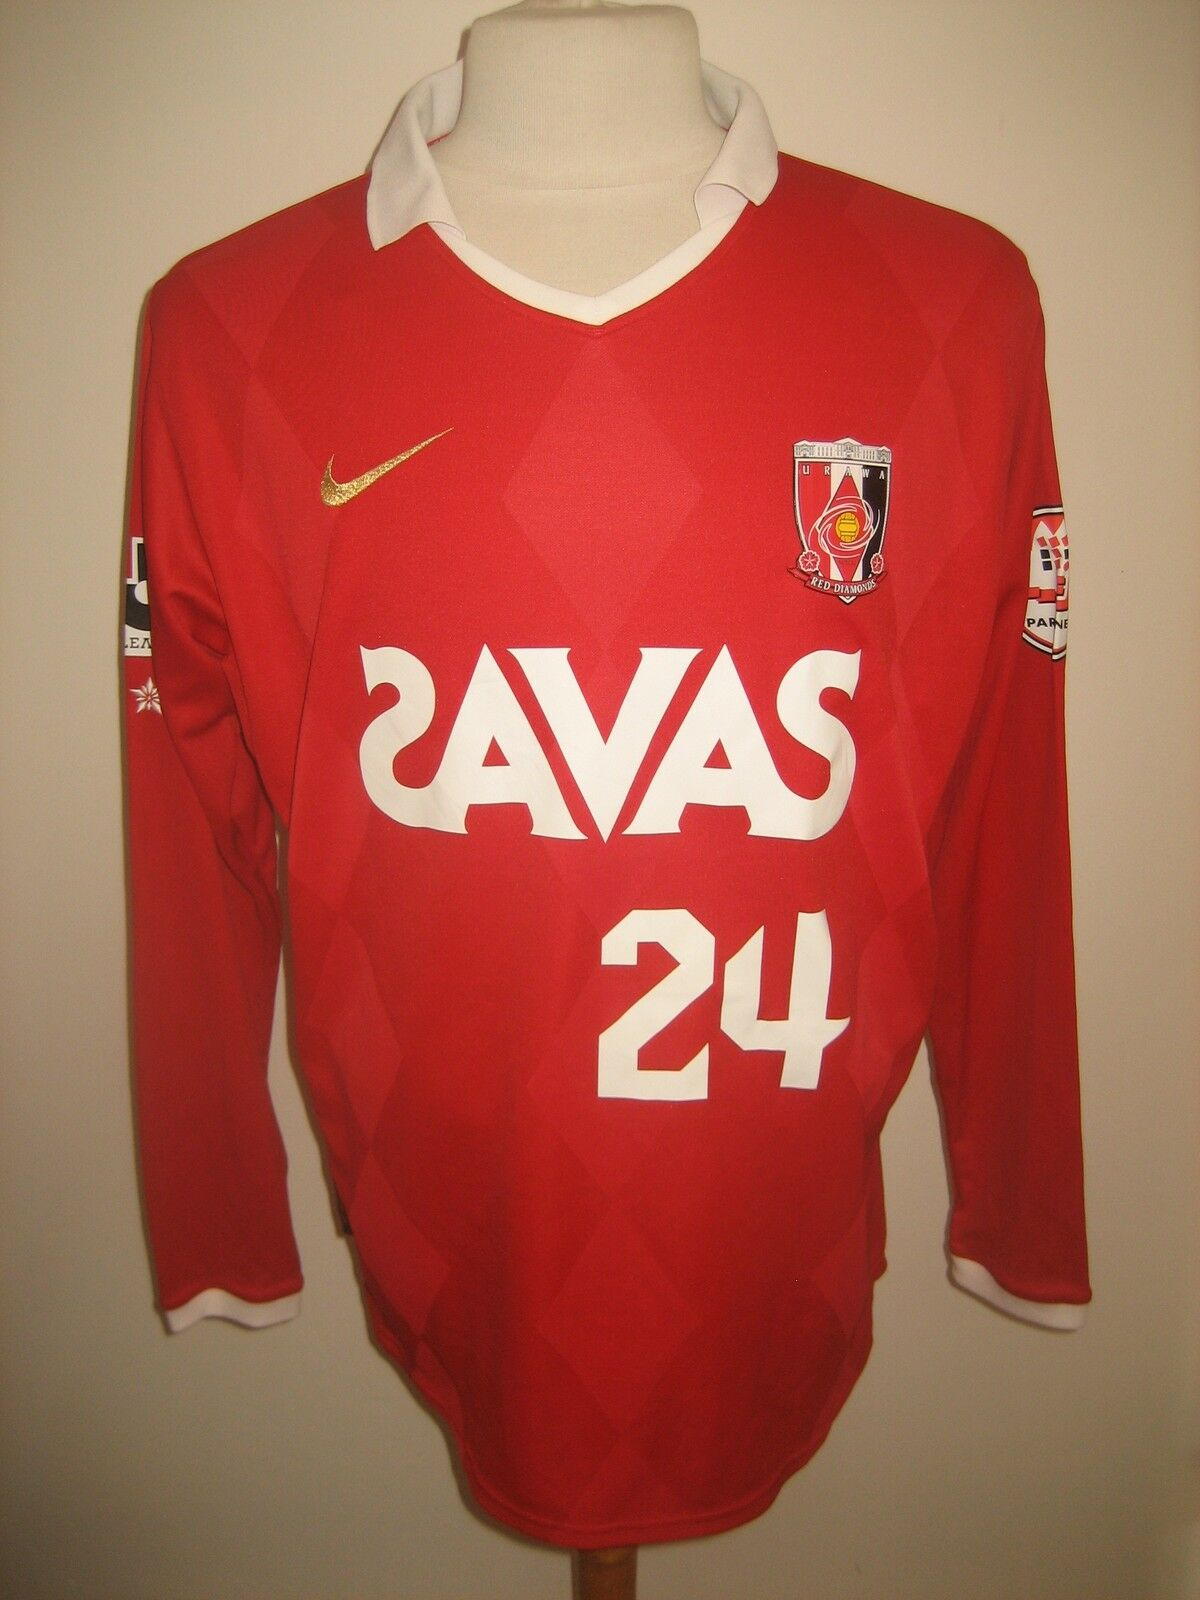 Urawa rosso Diamonds MATCH WORN WORN WORN Japan rare football shirt soccer jersey Dimensione XL a0a0a2